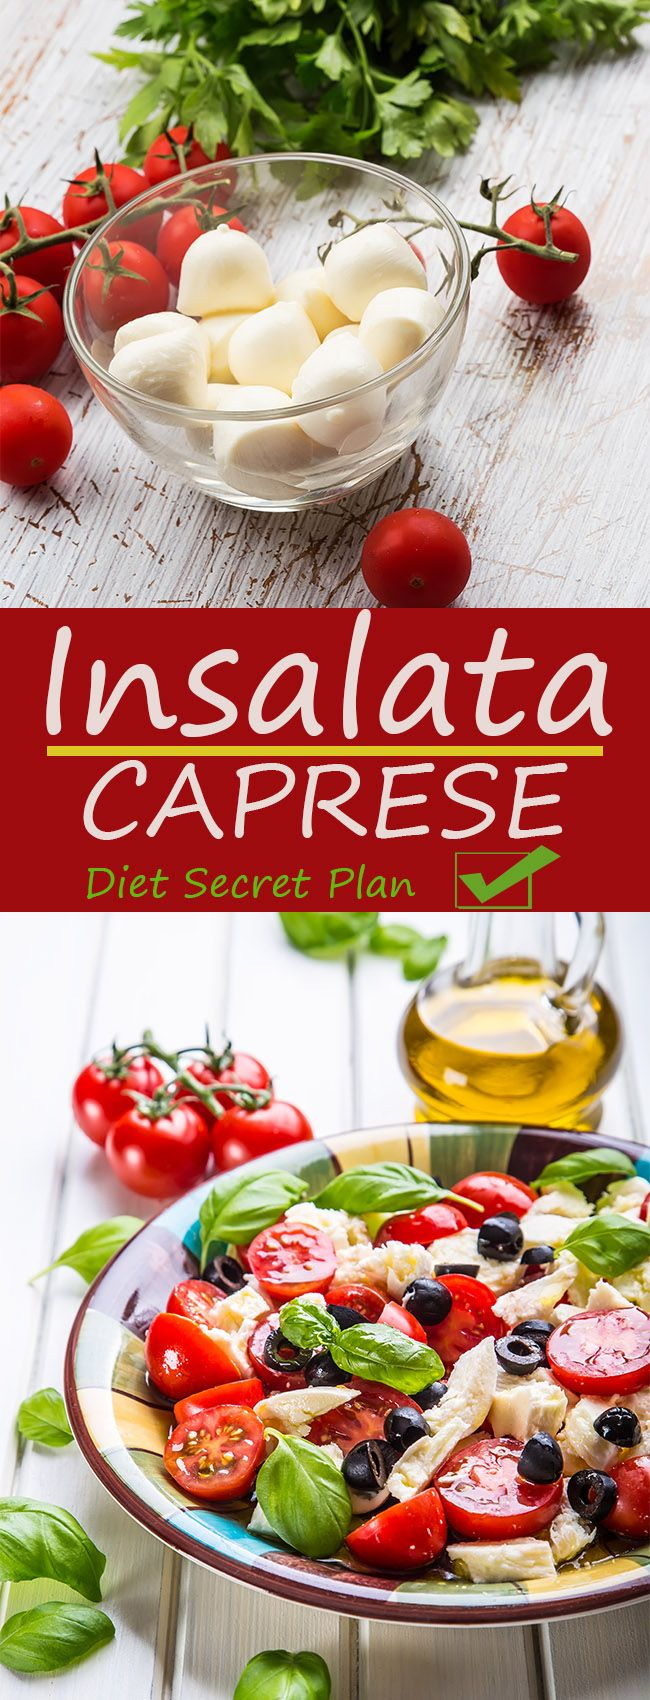 INSALATA CAPRESE Recipe – Diet Plan – Perfect Body Secret